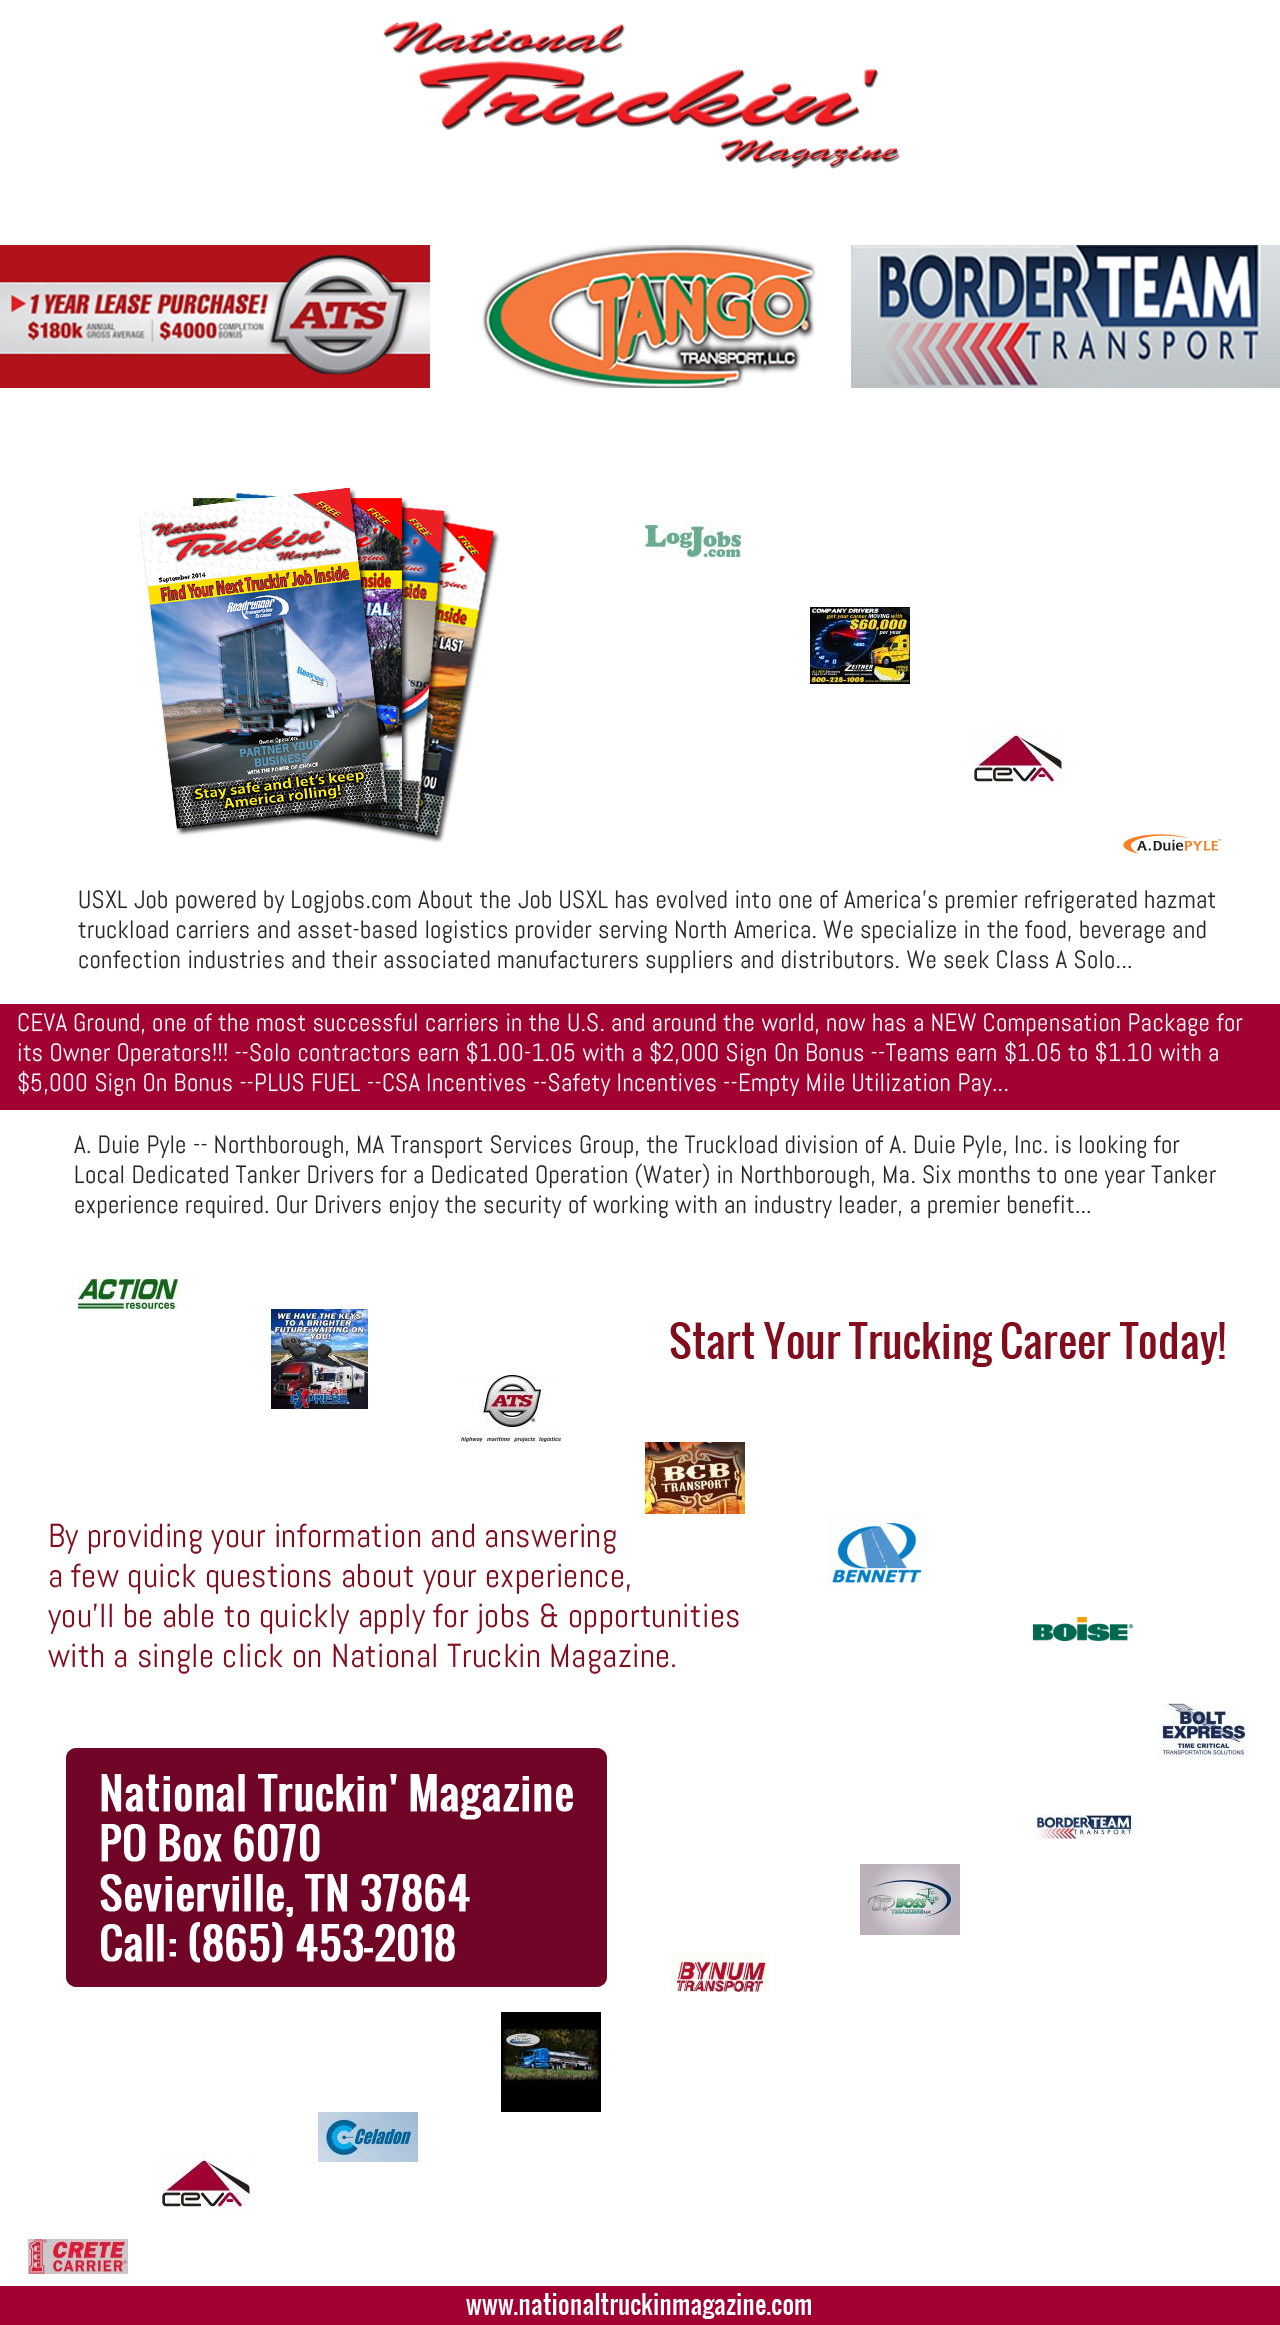 Online_Search_For_Truck_Driving_Jobs.jpg